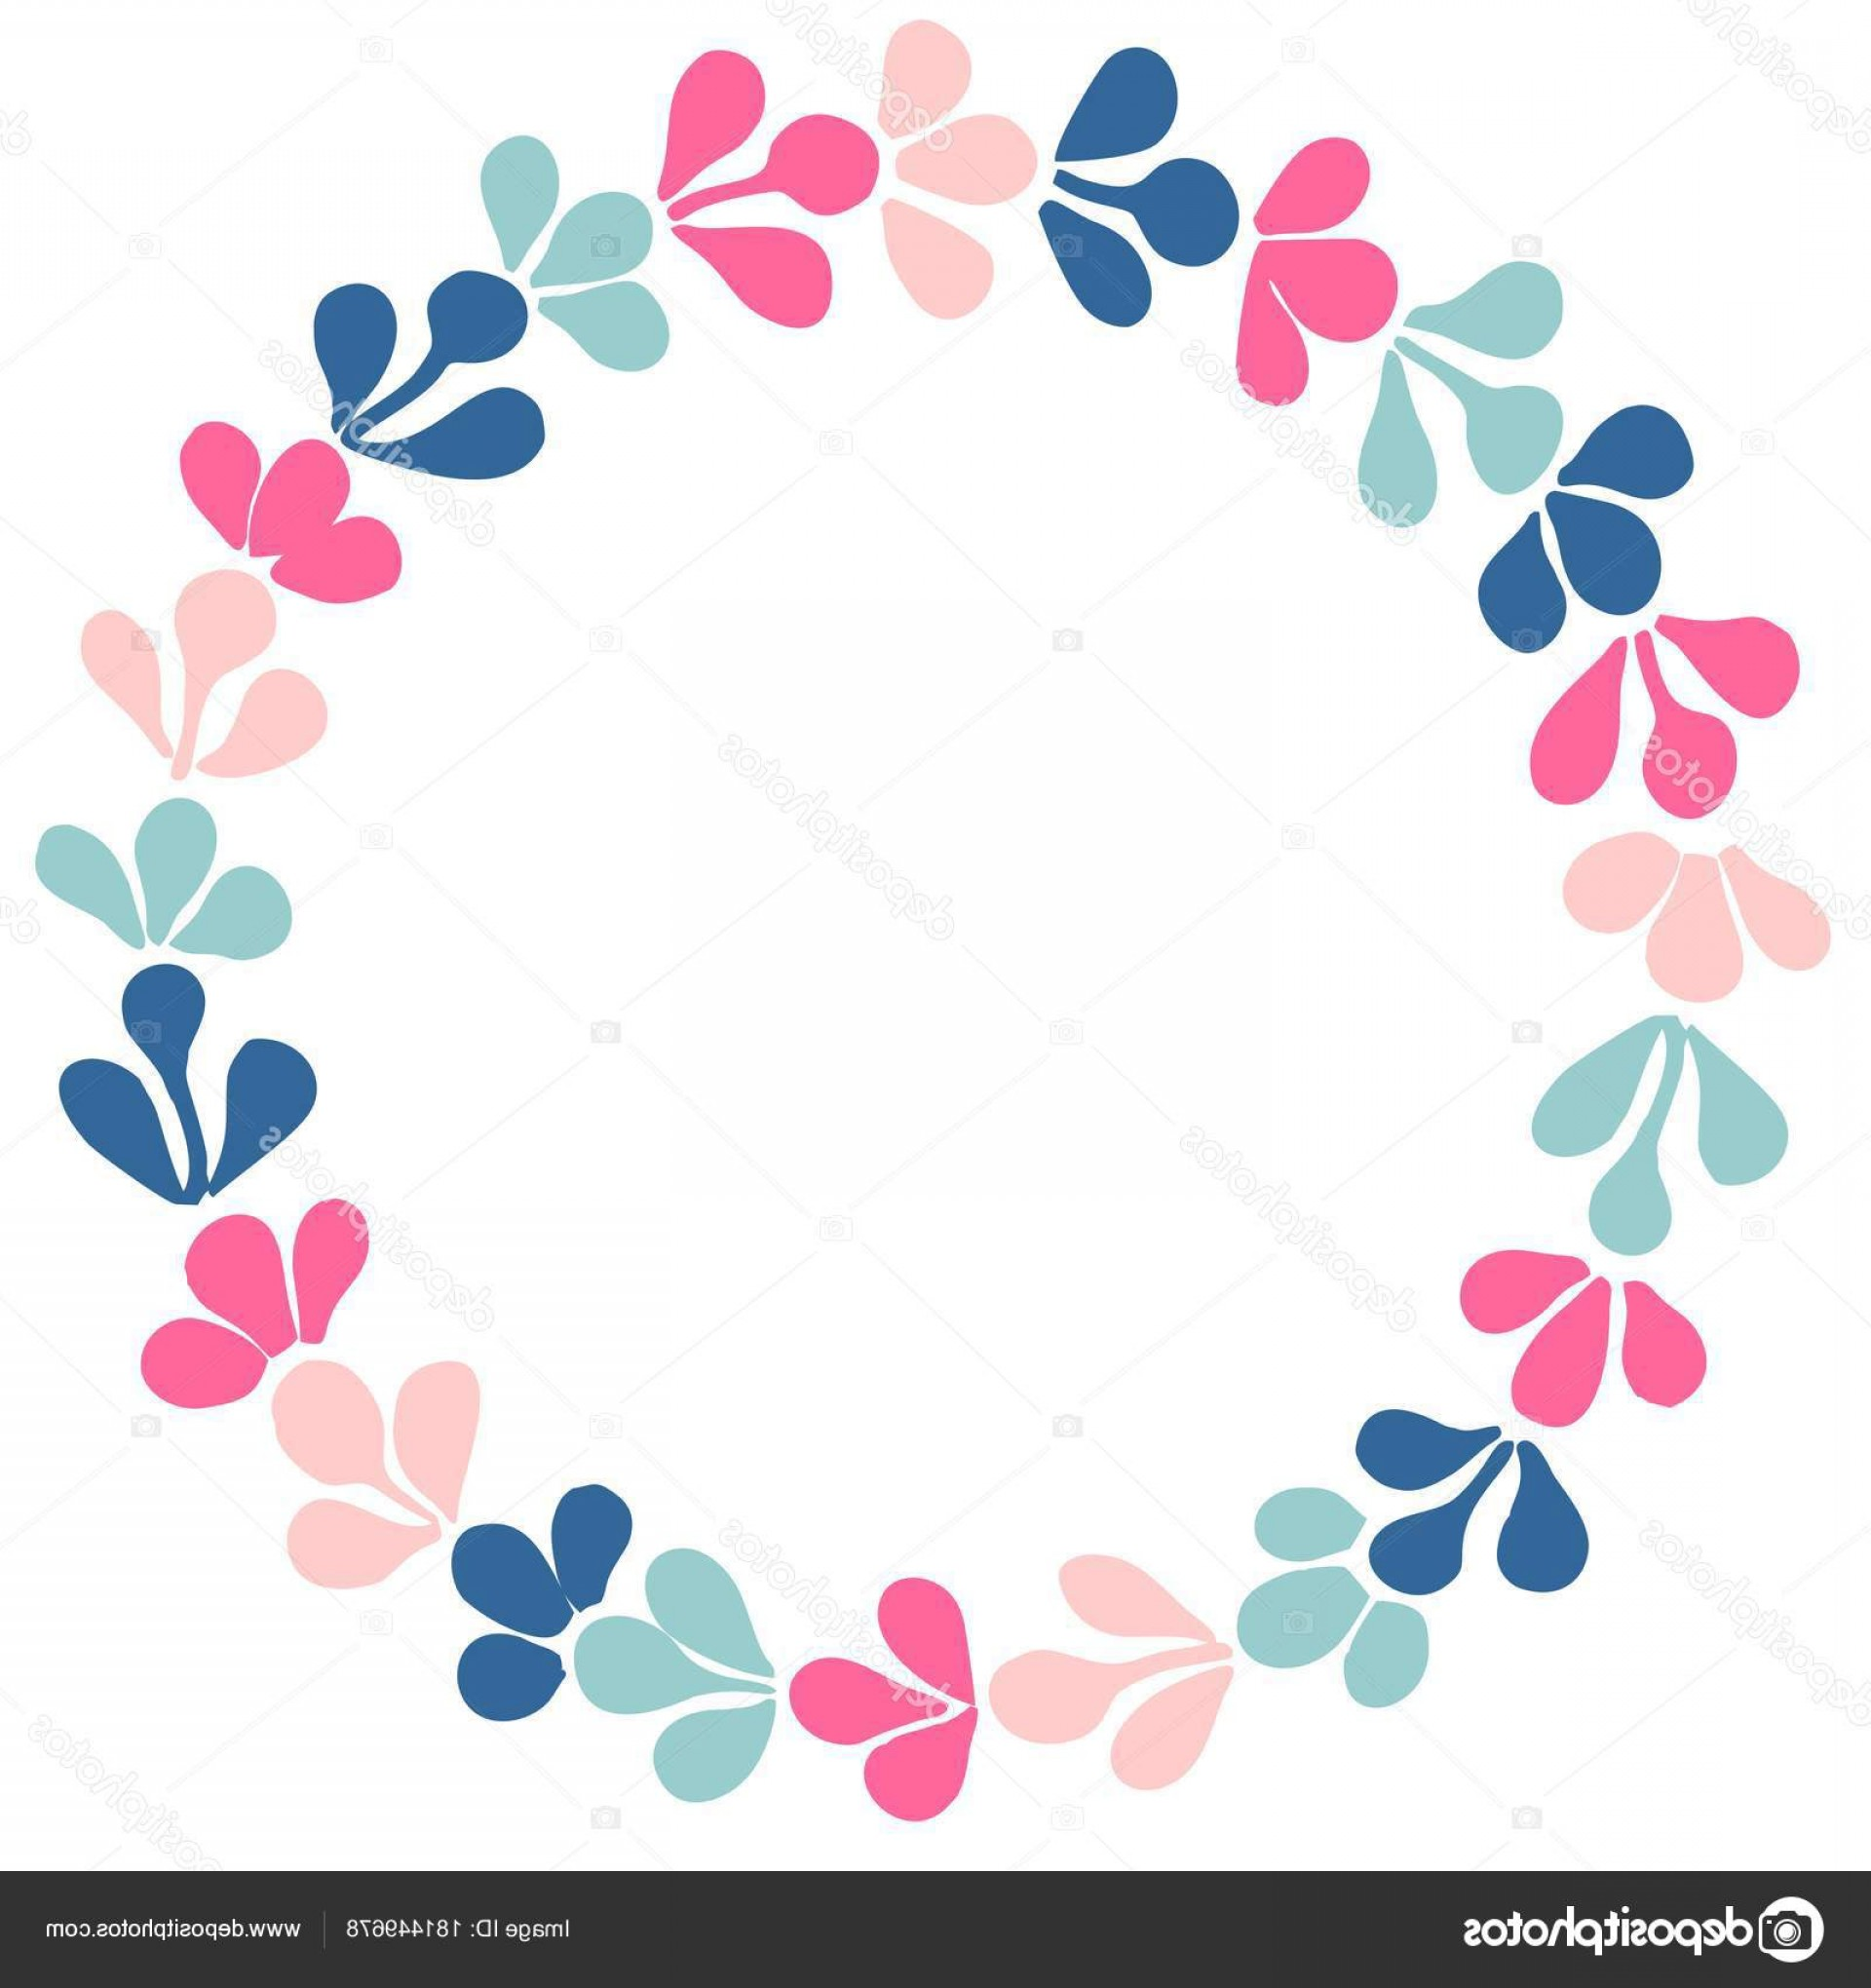 Floral Laurel Wreath Vector: Stock Illustration Pastel Laurel Wreath Vector Frame